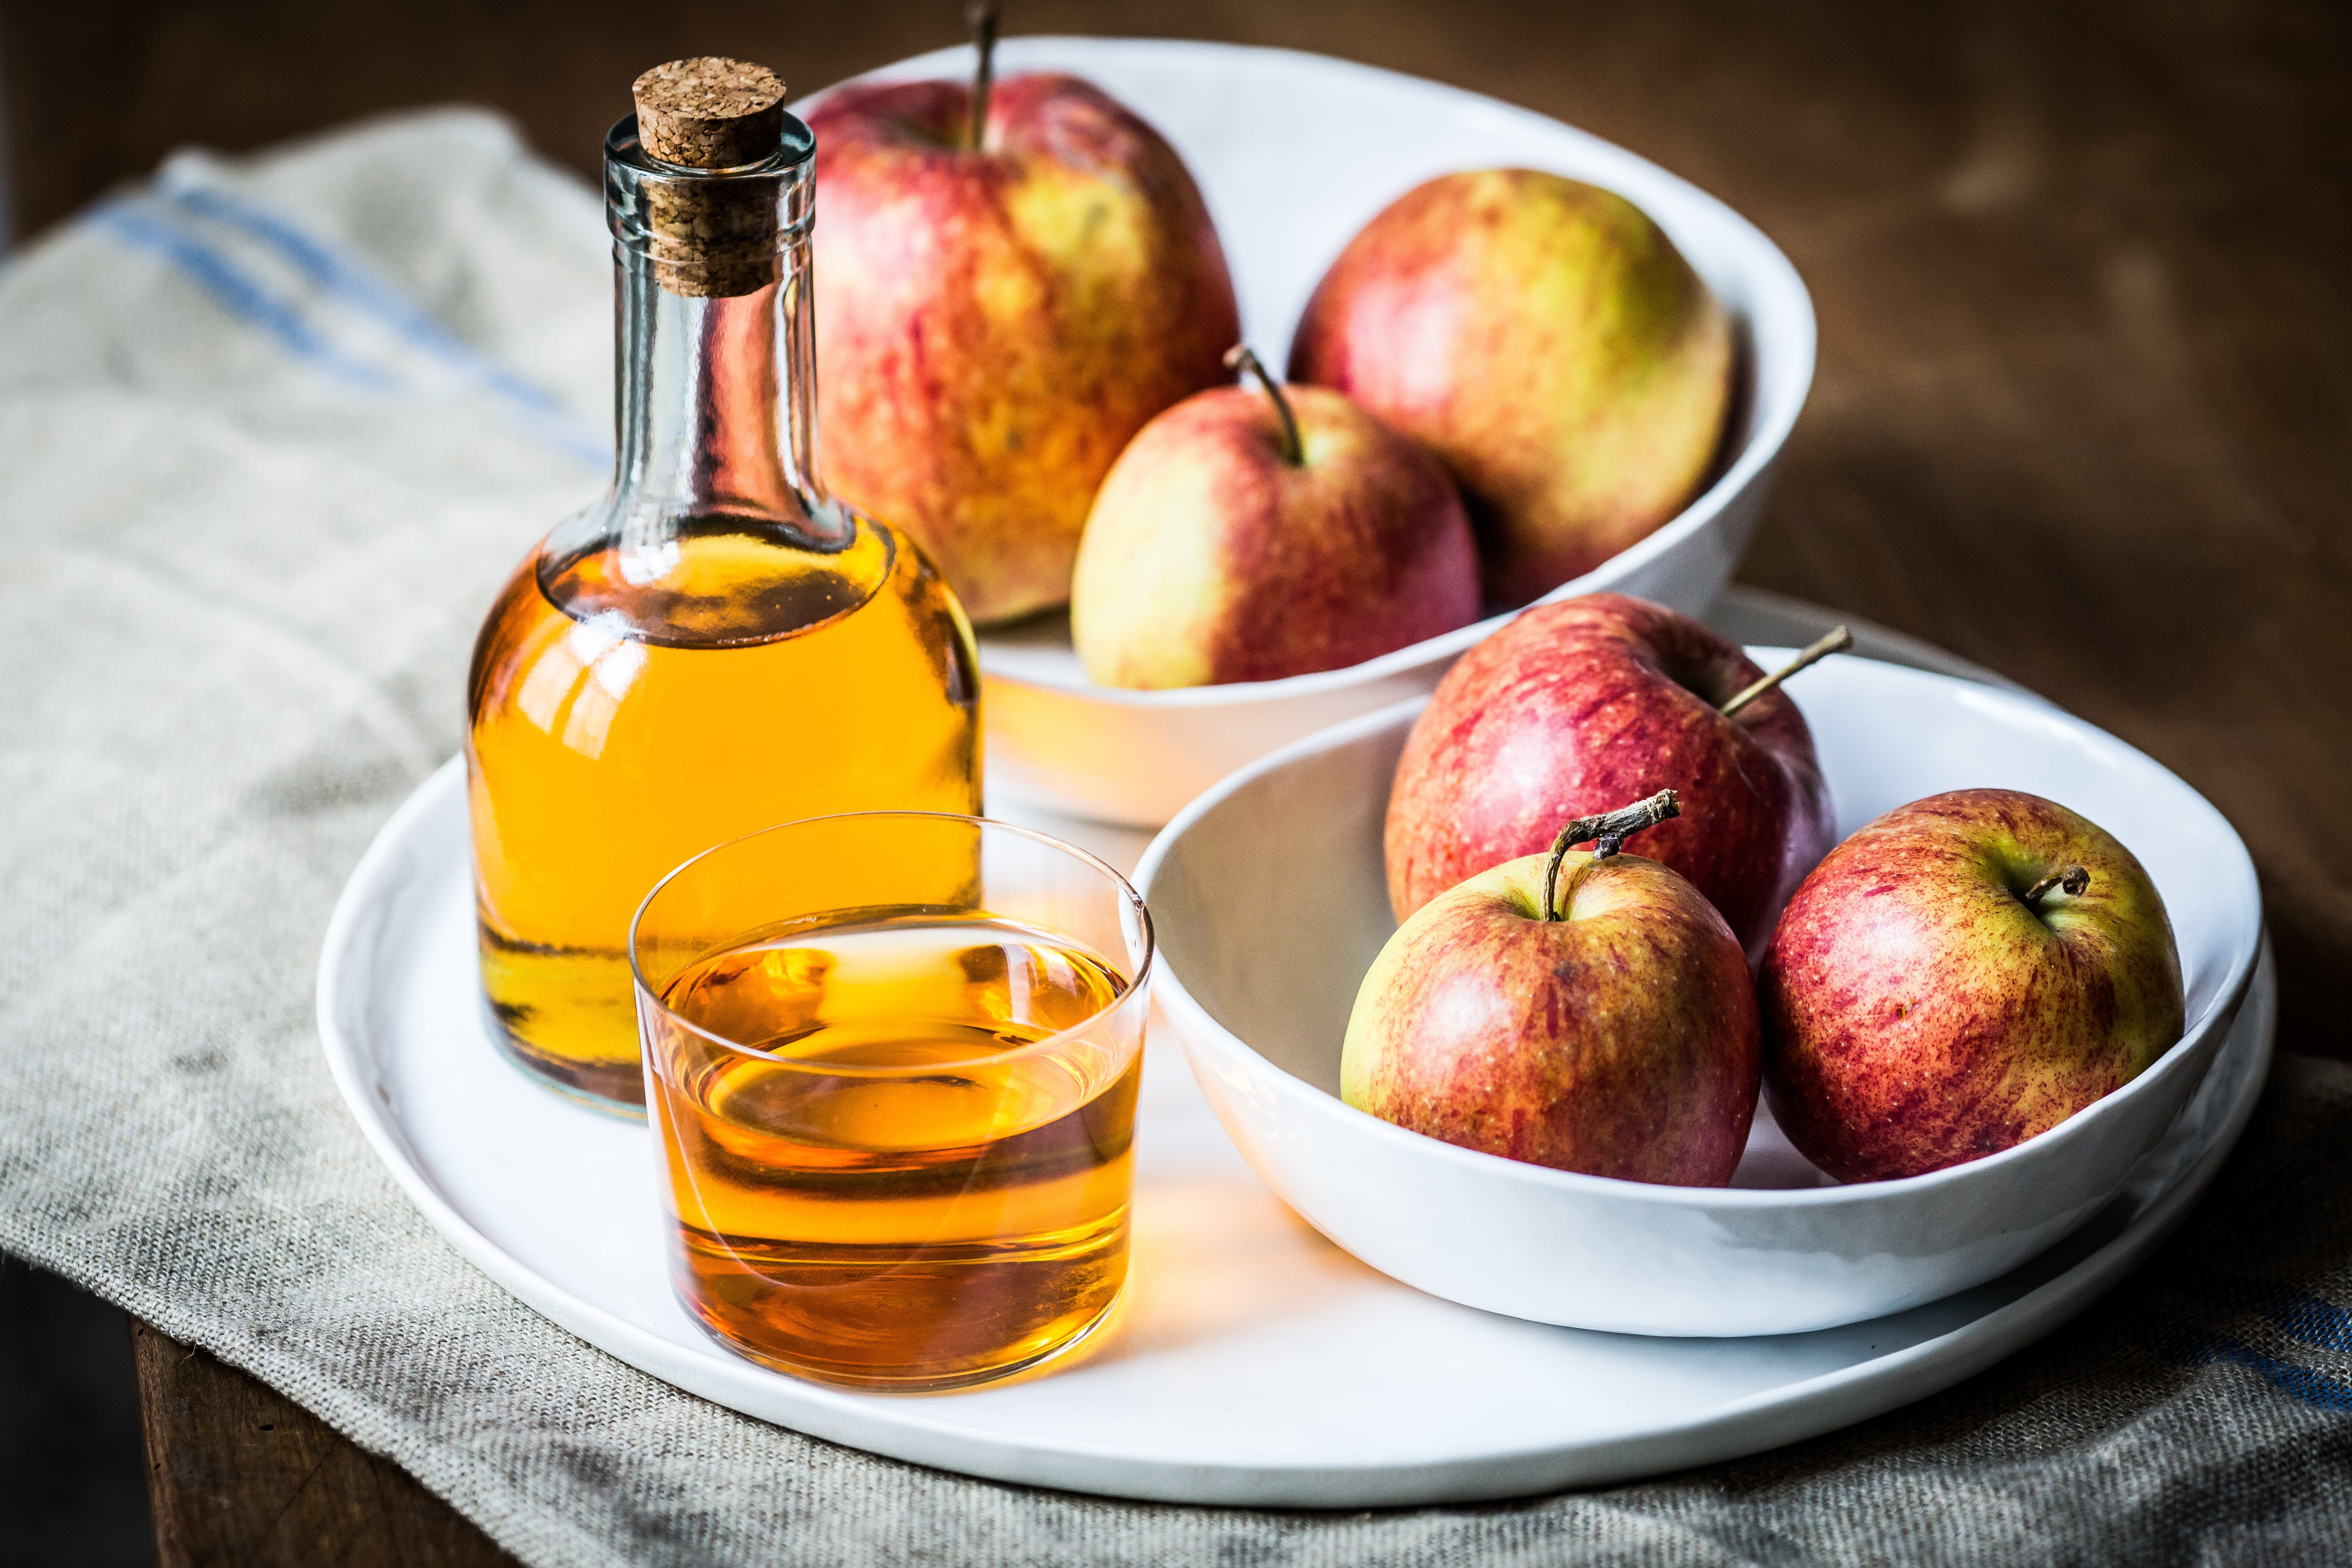 Does Vinegar Burn and Reduce Body Fat?